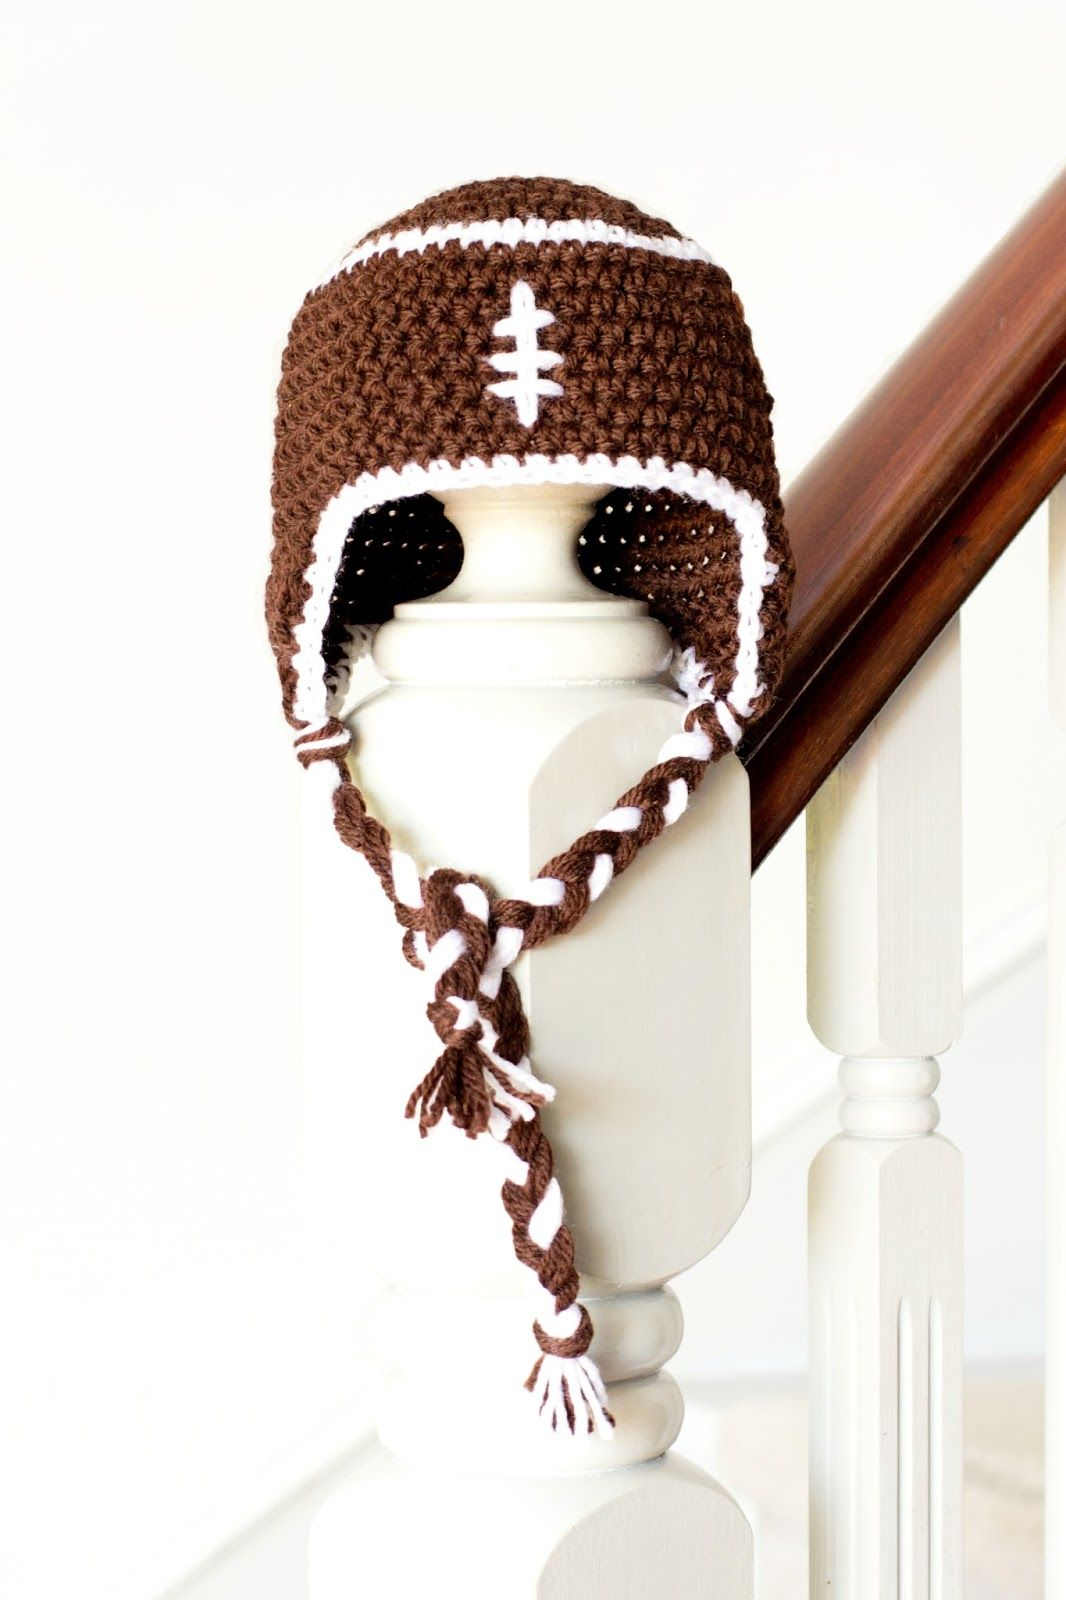 Baby Football Earflap Hat Crochet Pattern | Crafts | Pinterest ...